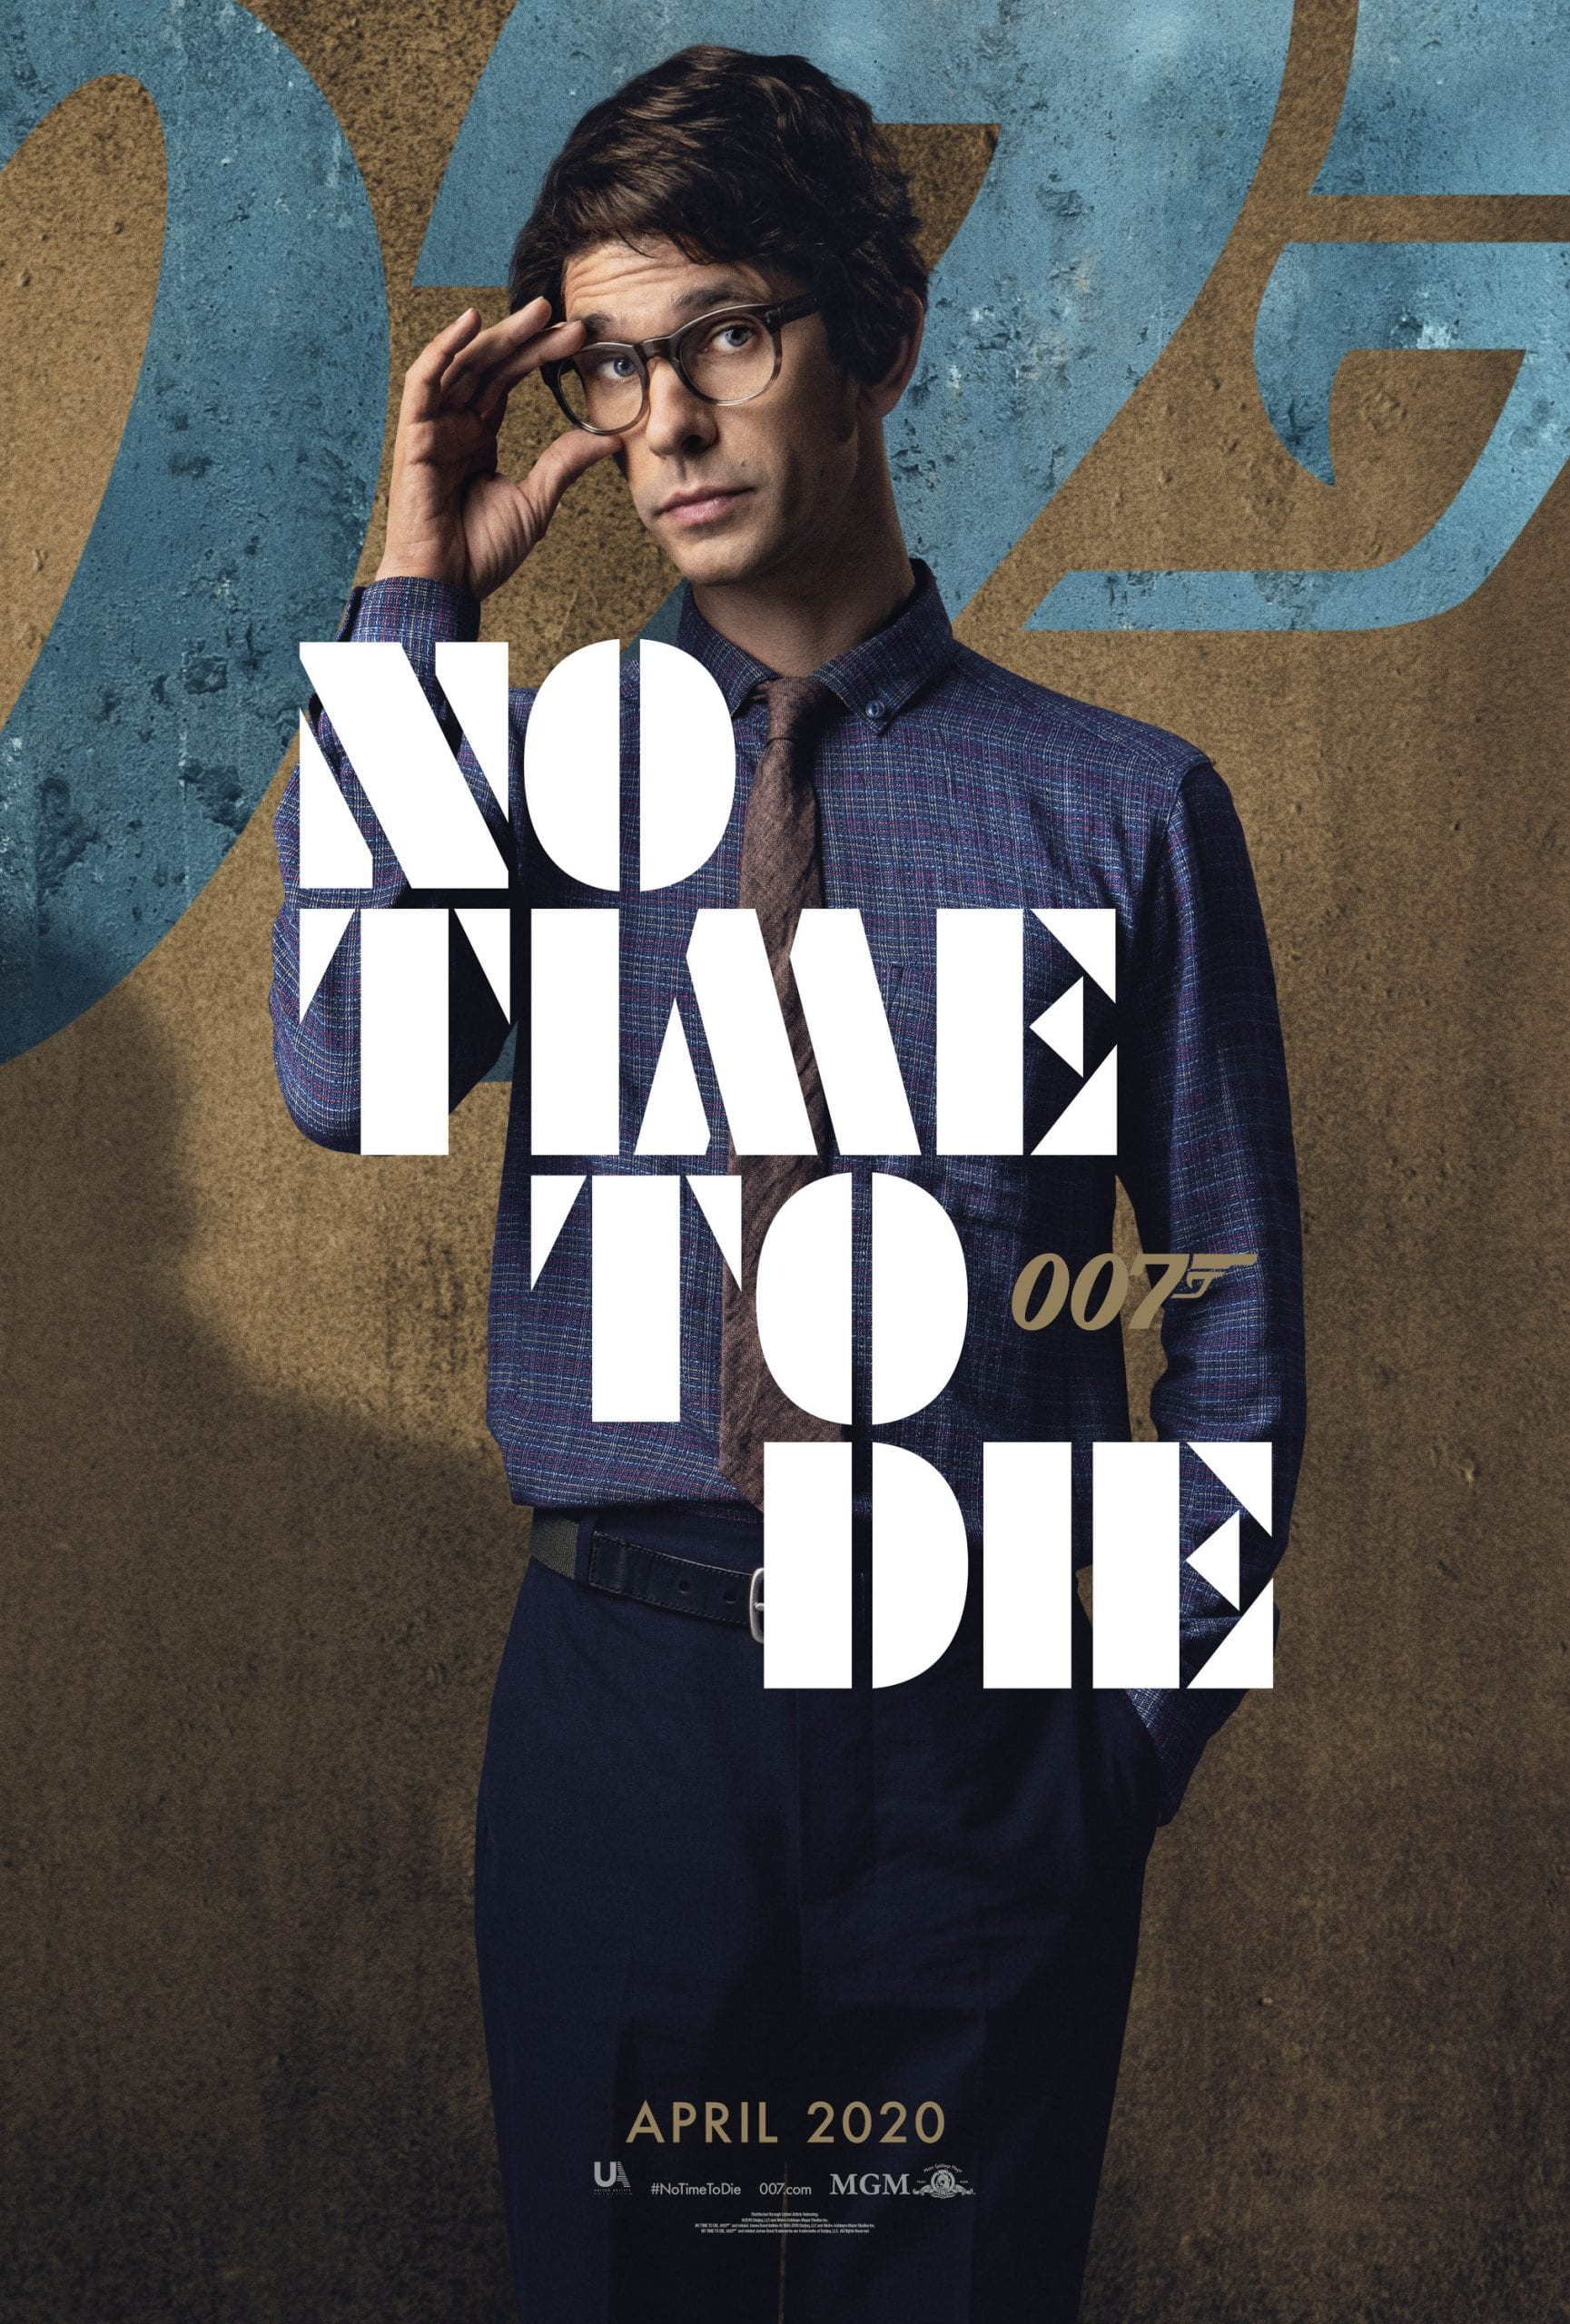 007 No Time To Die Bond 25 Character Posters Ben Whishaw as Q